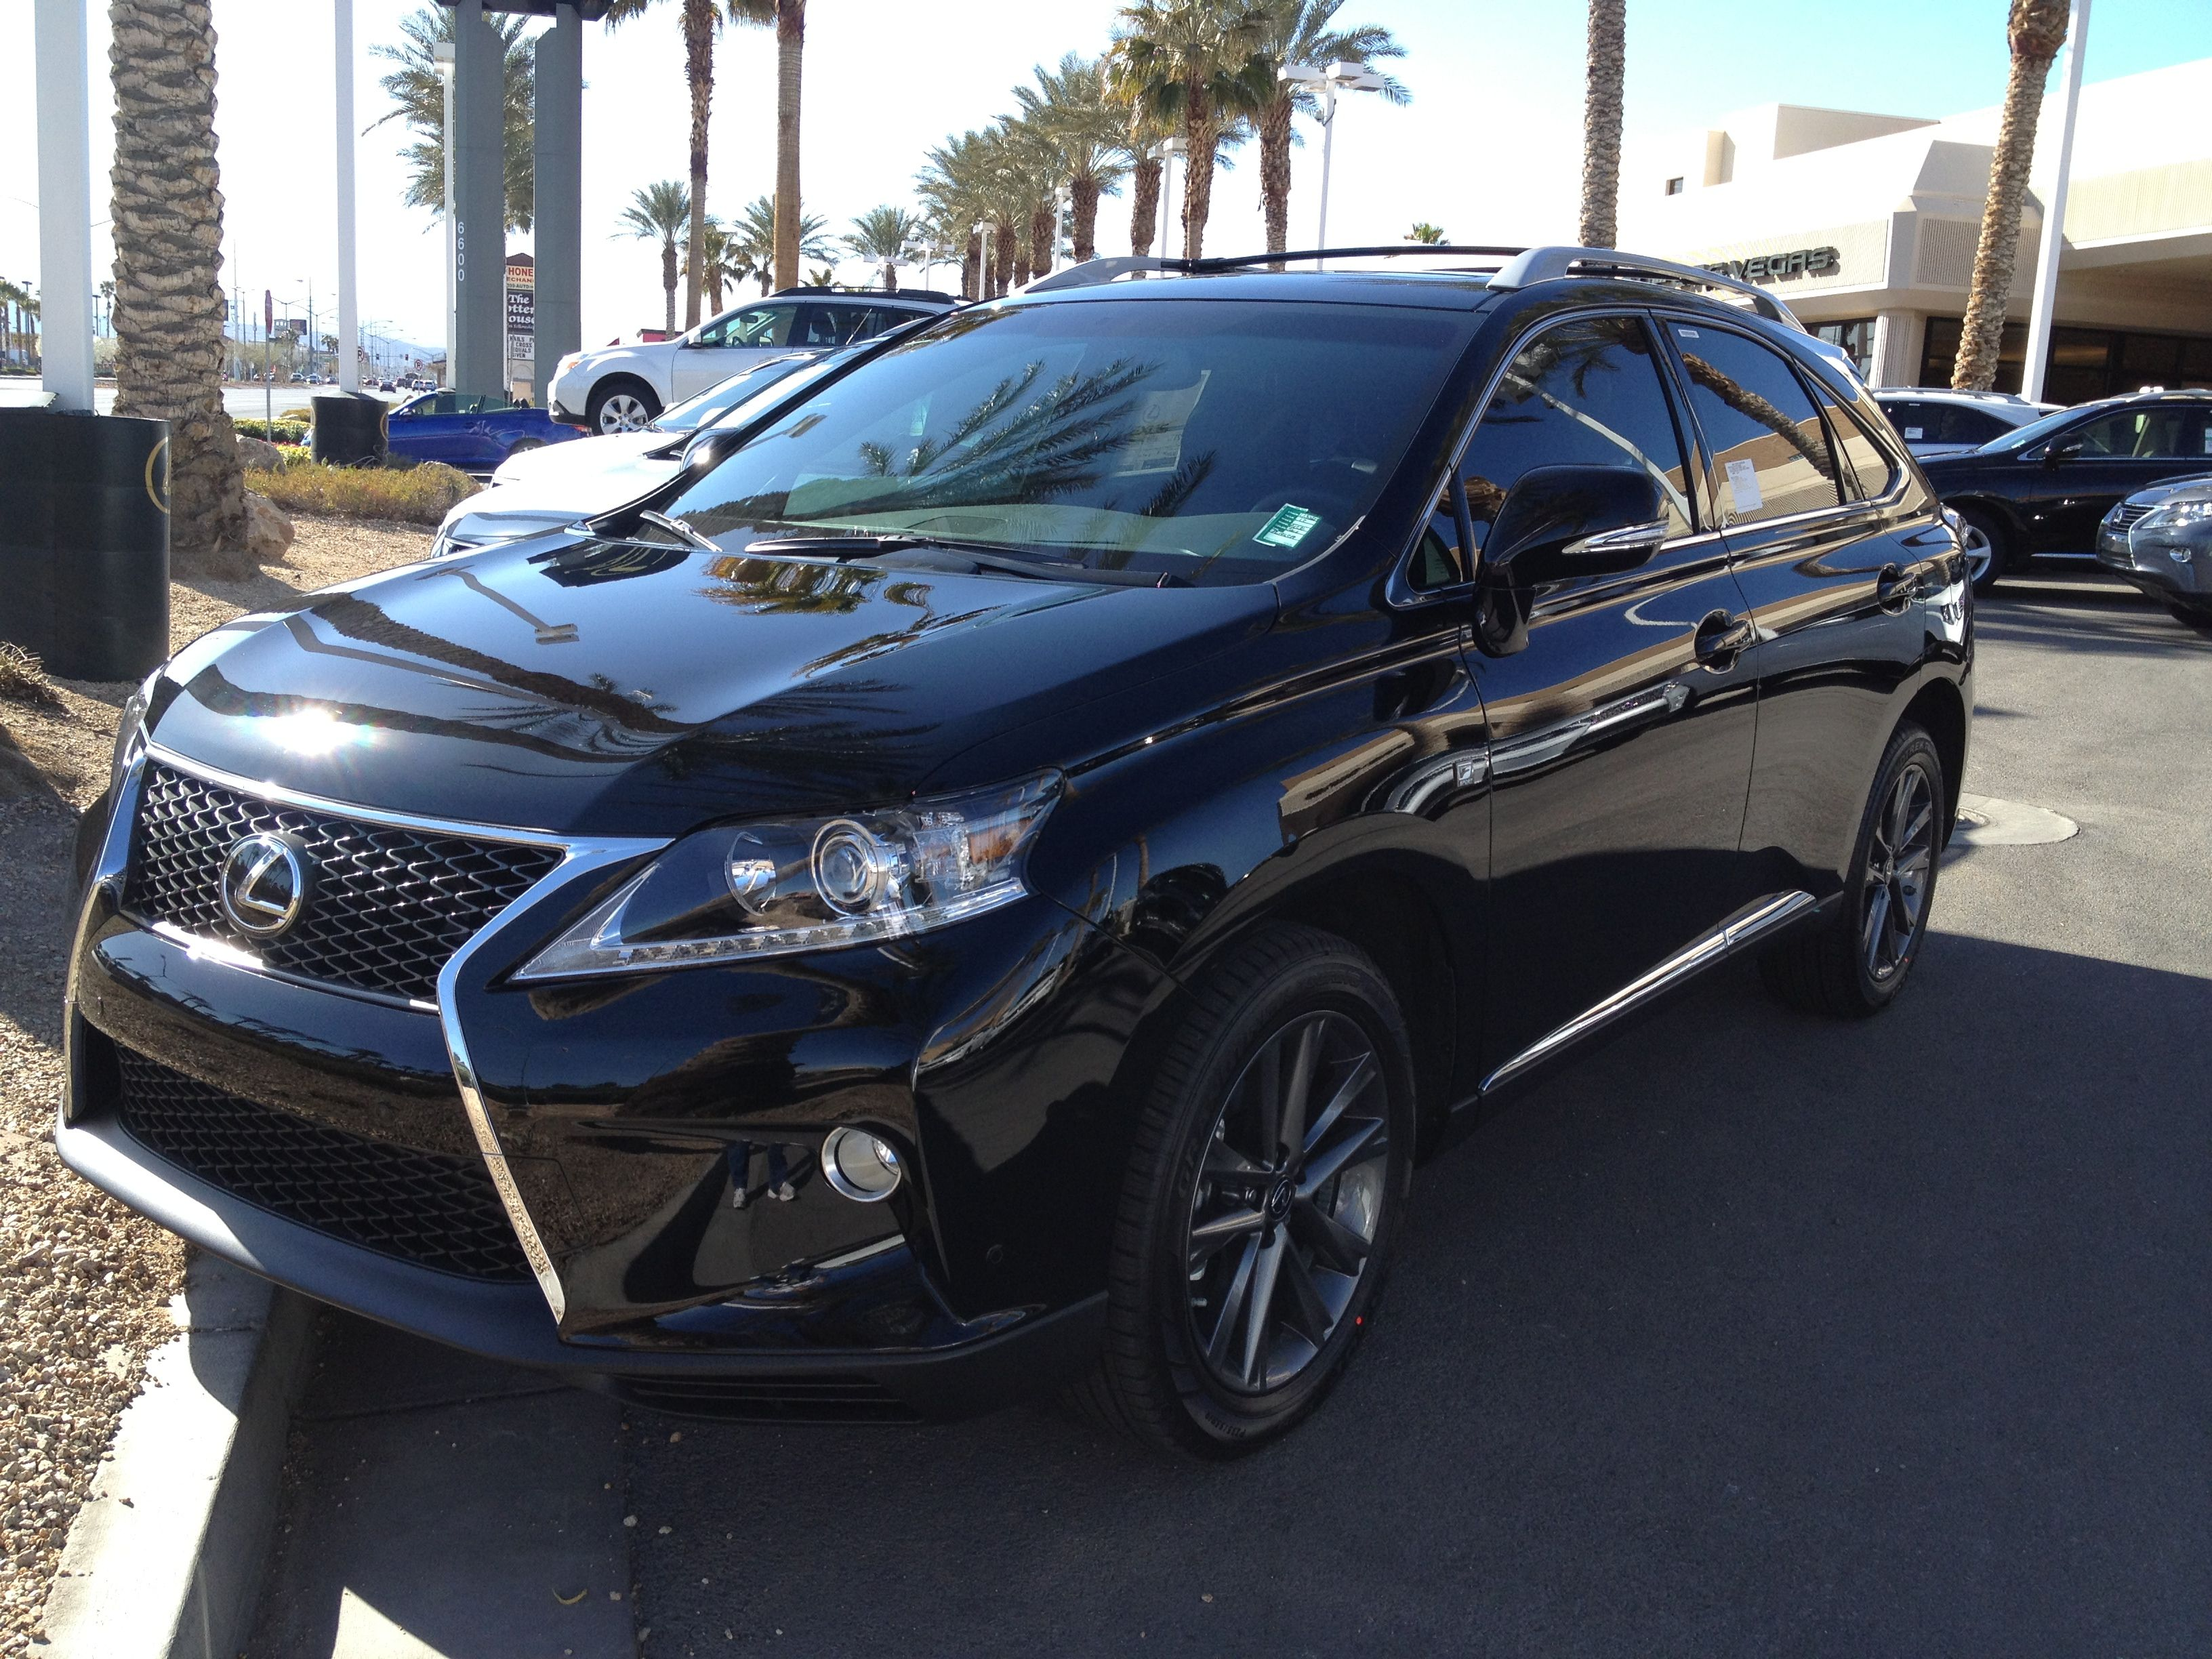 Lexus RX350 Black with black rims. My dream vehicle